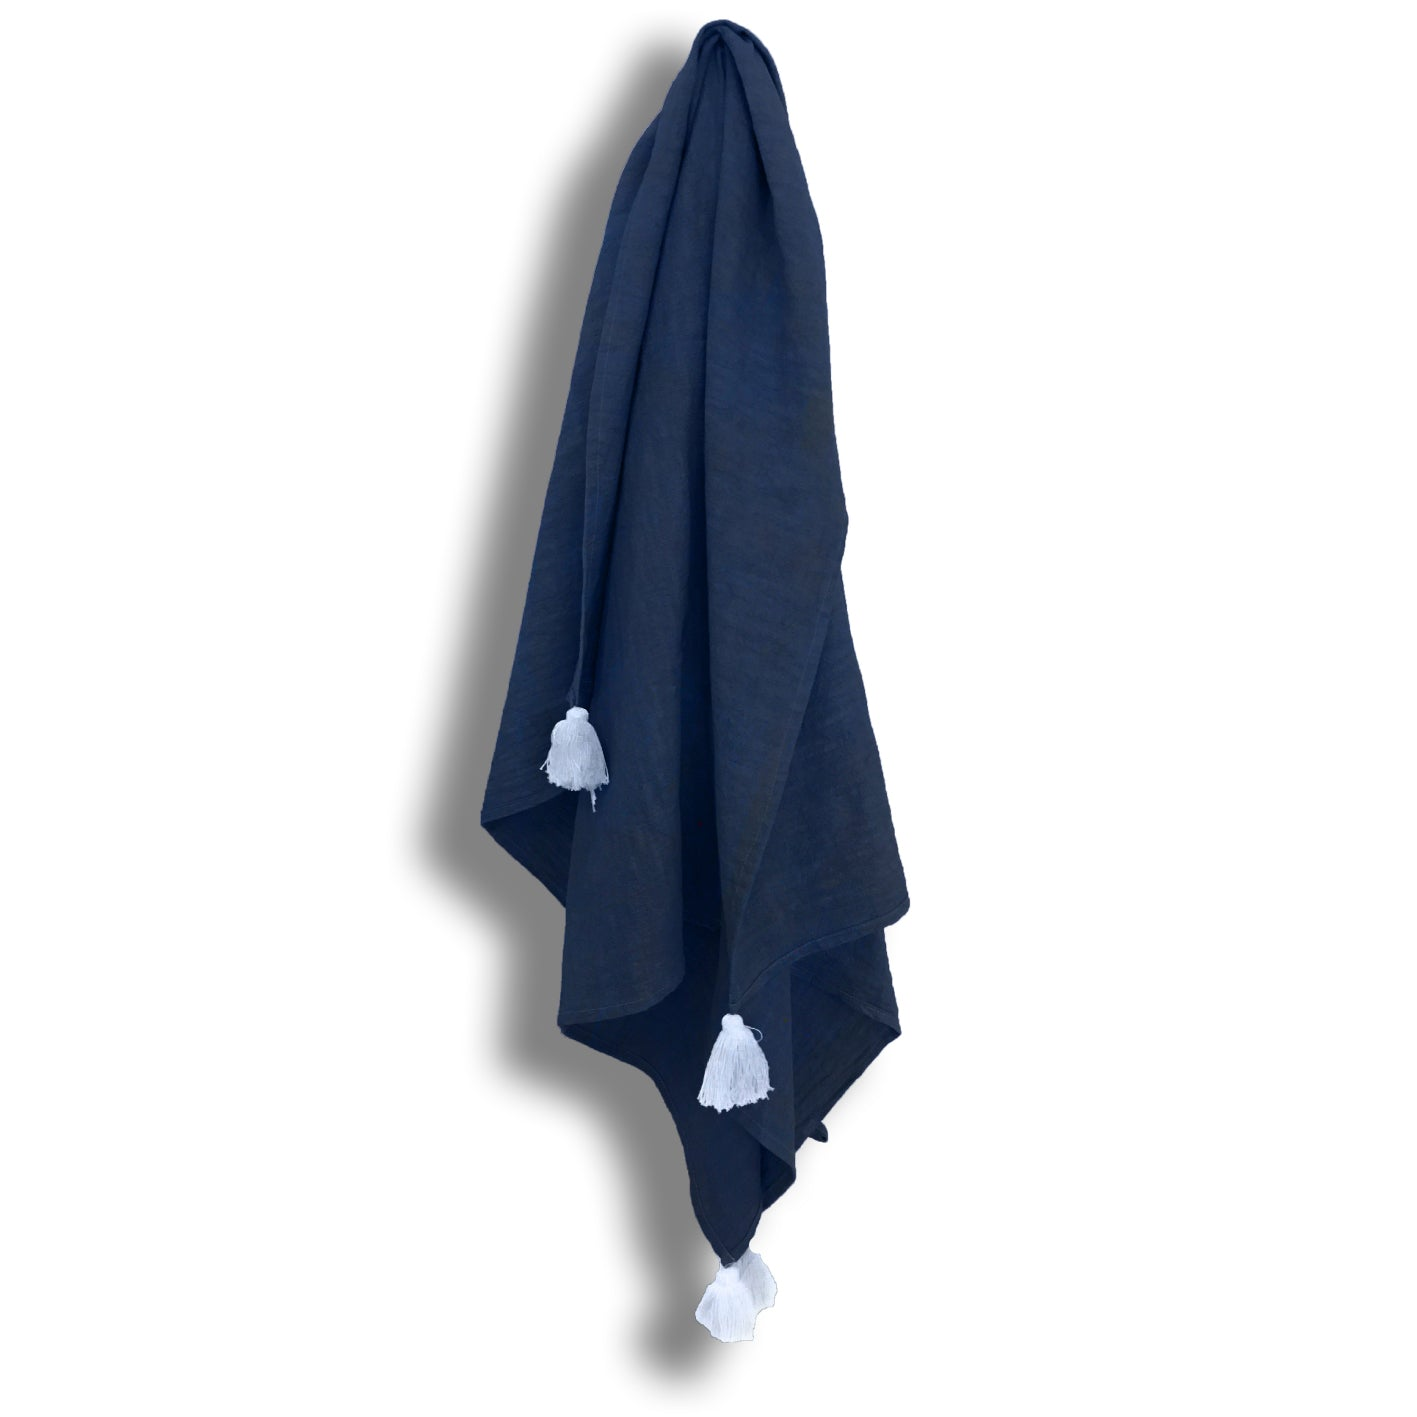 W/S - TILLY TOWEL - INDIGO